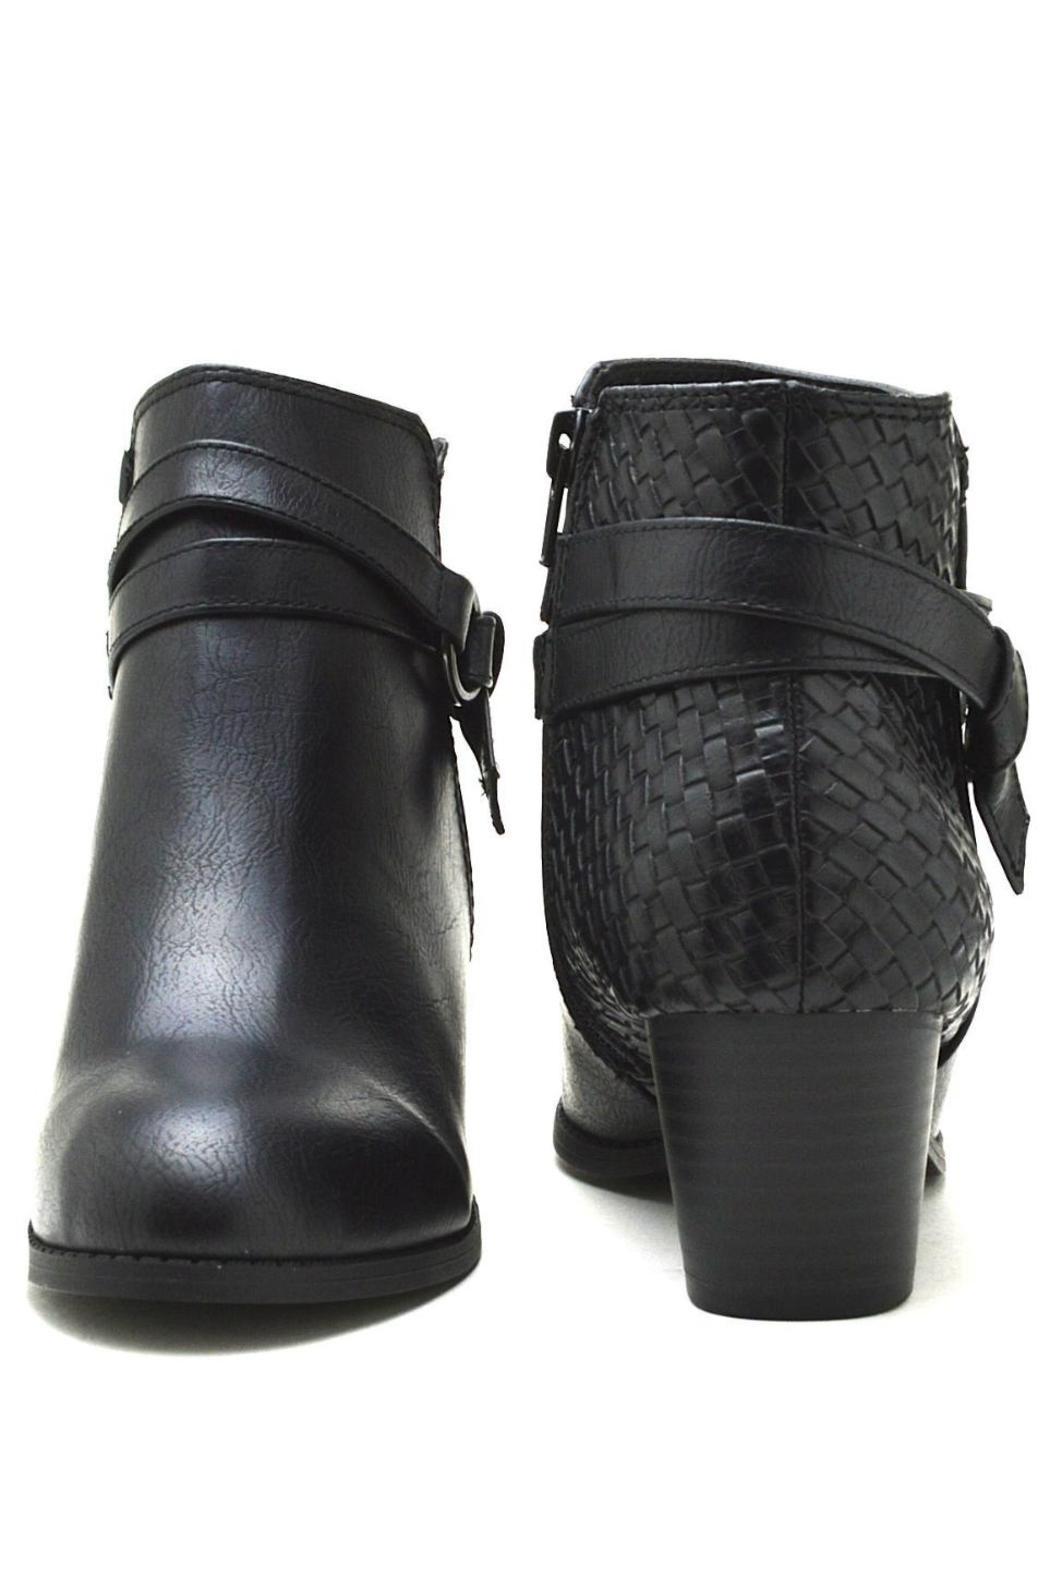 City Classified Woven Back-Belted Booties - Back Cropped Image